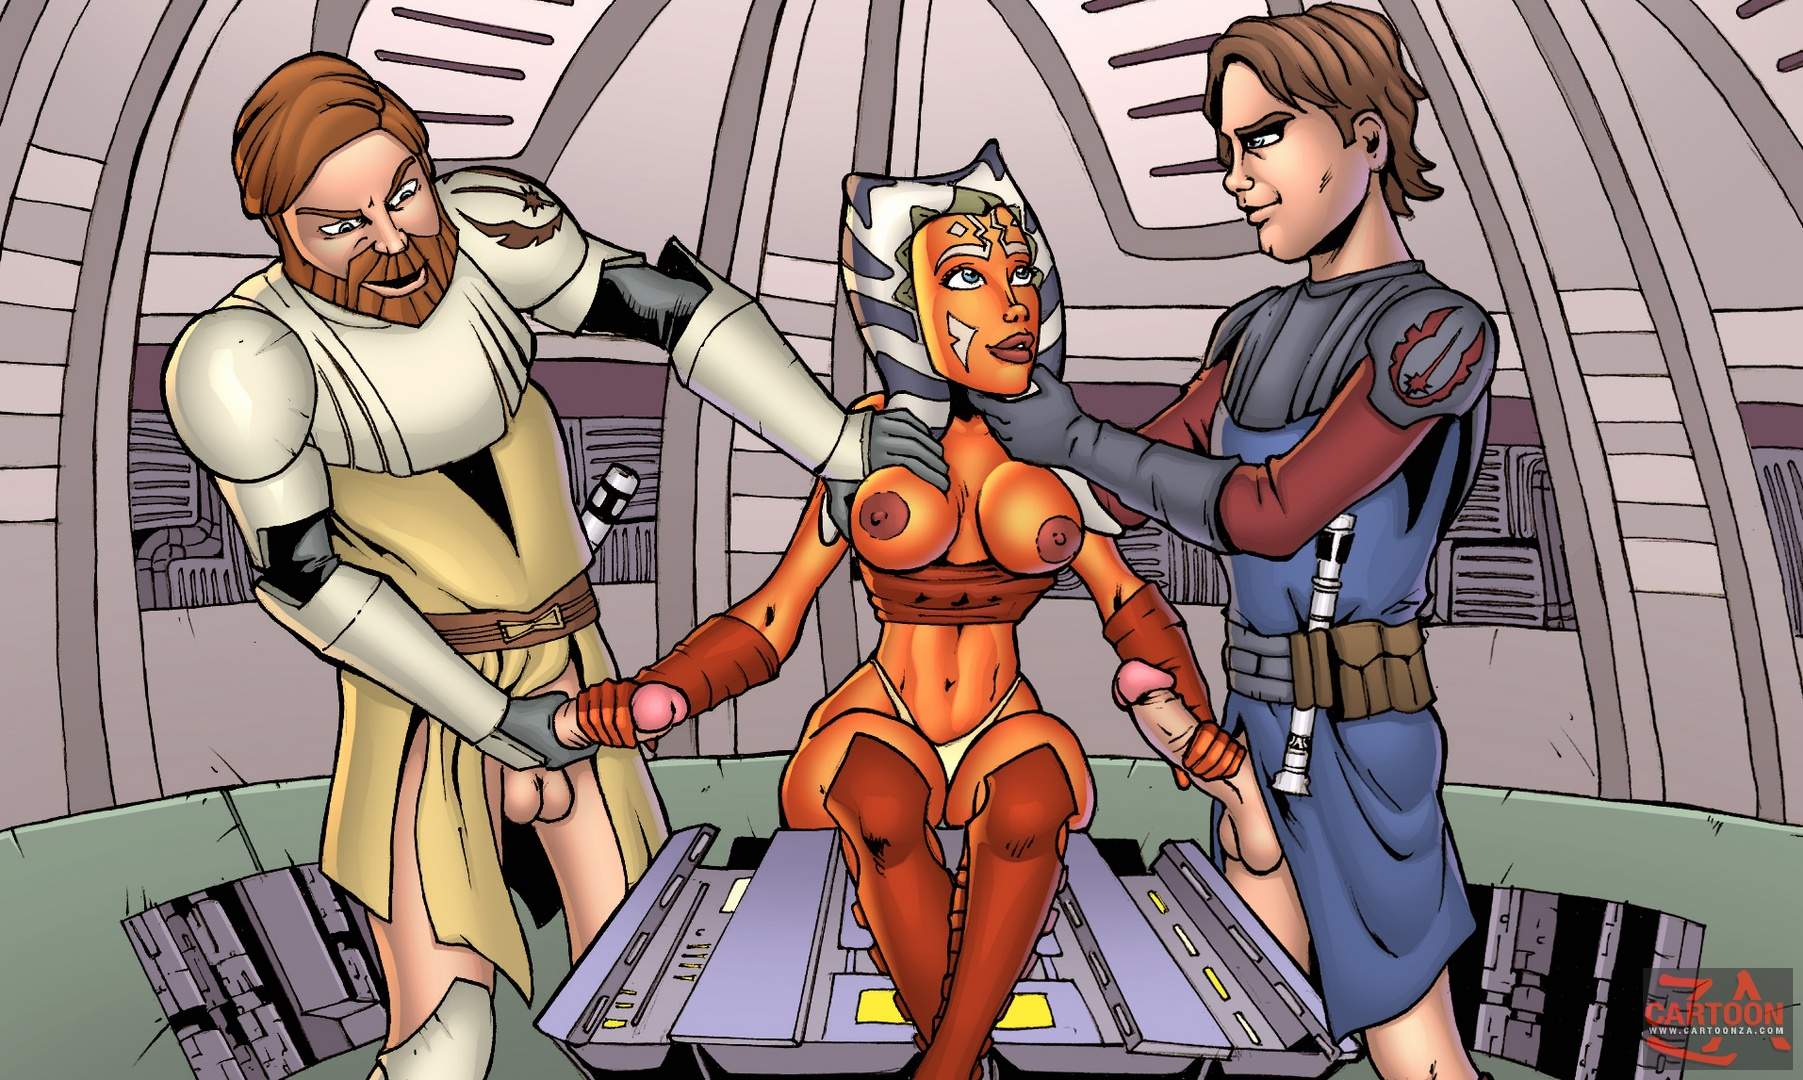 Cartoon porn star wars ahsoka sexy streaming